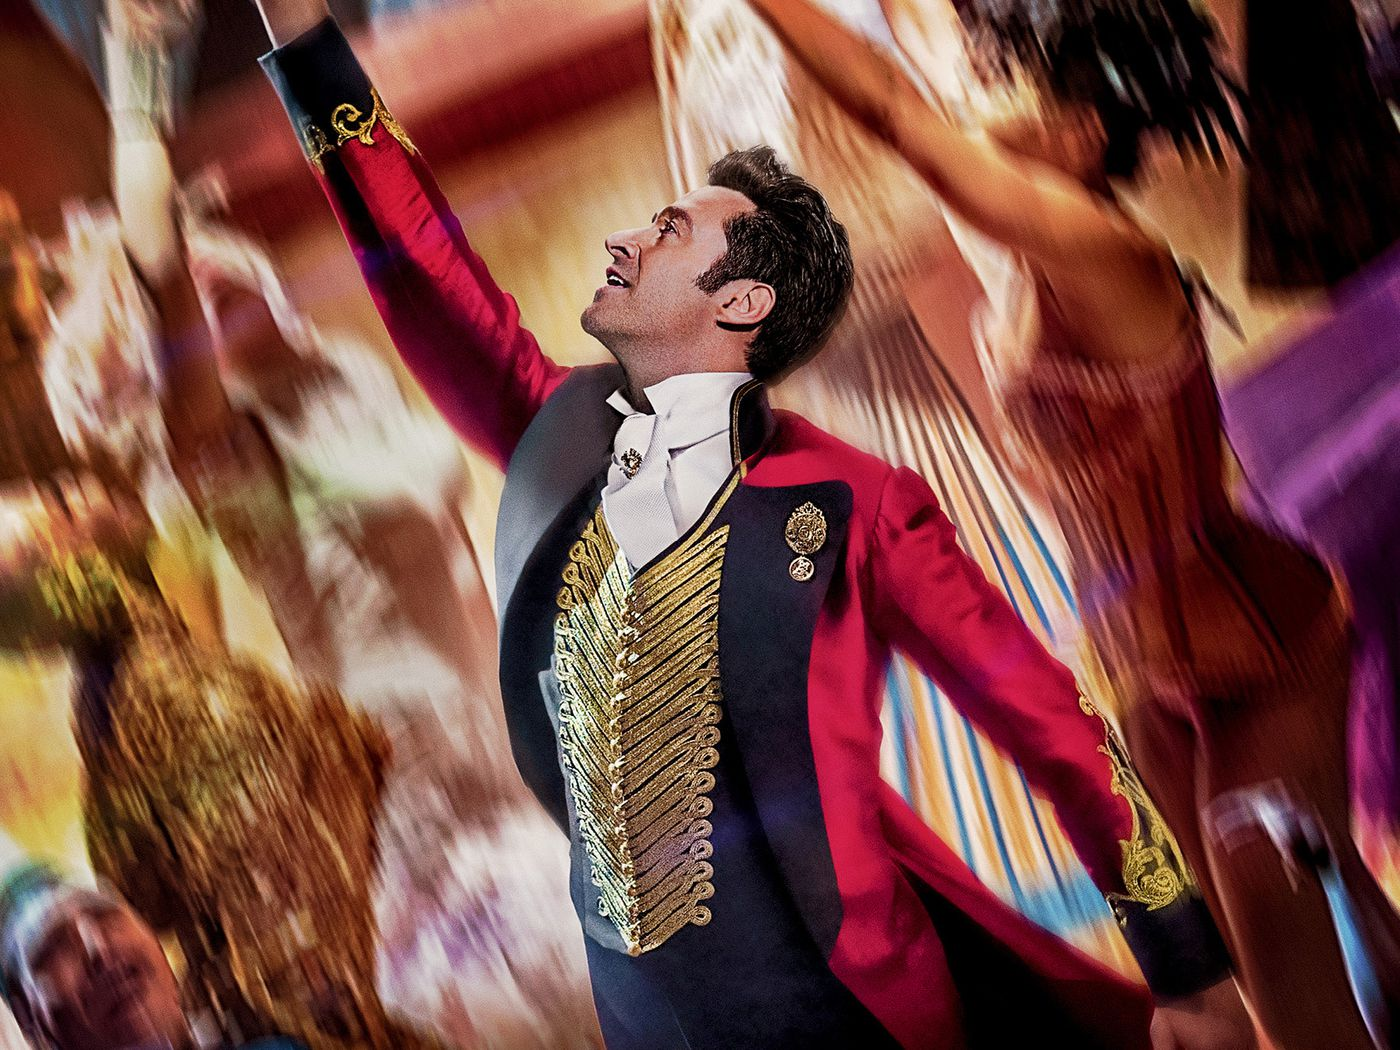 The Greatest Showman review: Flashy, splashy, and fake - Vox